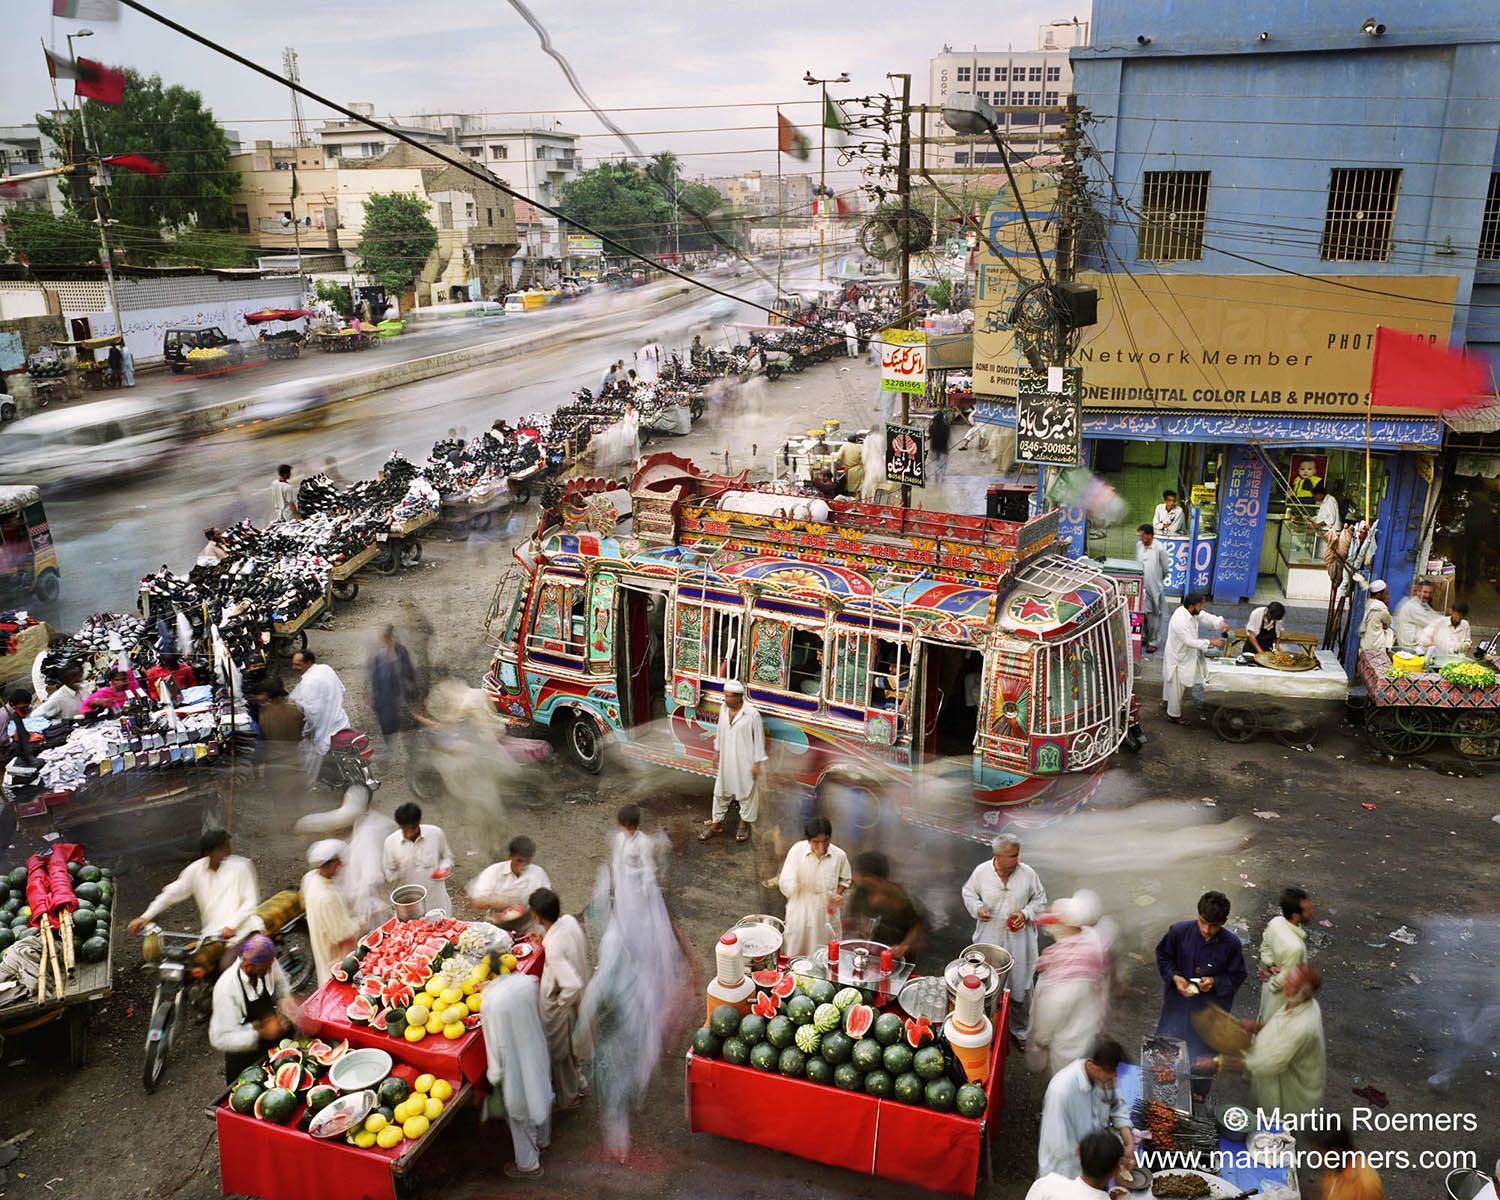 Karachi, Pakistan. From the series Metropolis. Photo: Martin Roemers, Courtesy of Anastasia Photo, New York.